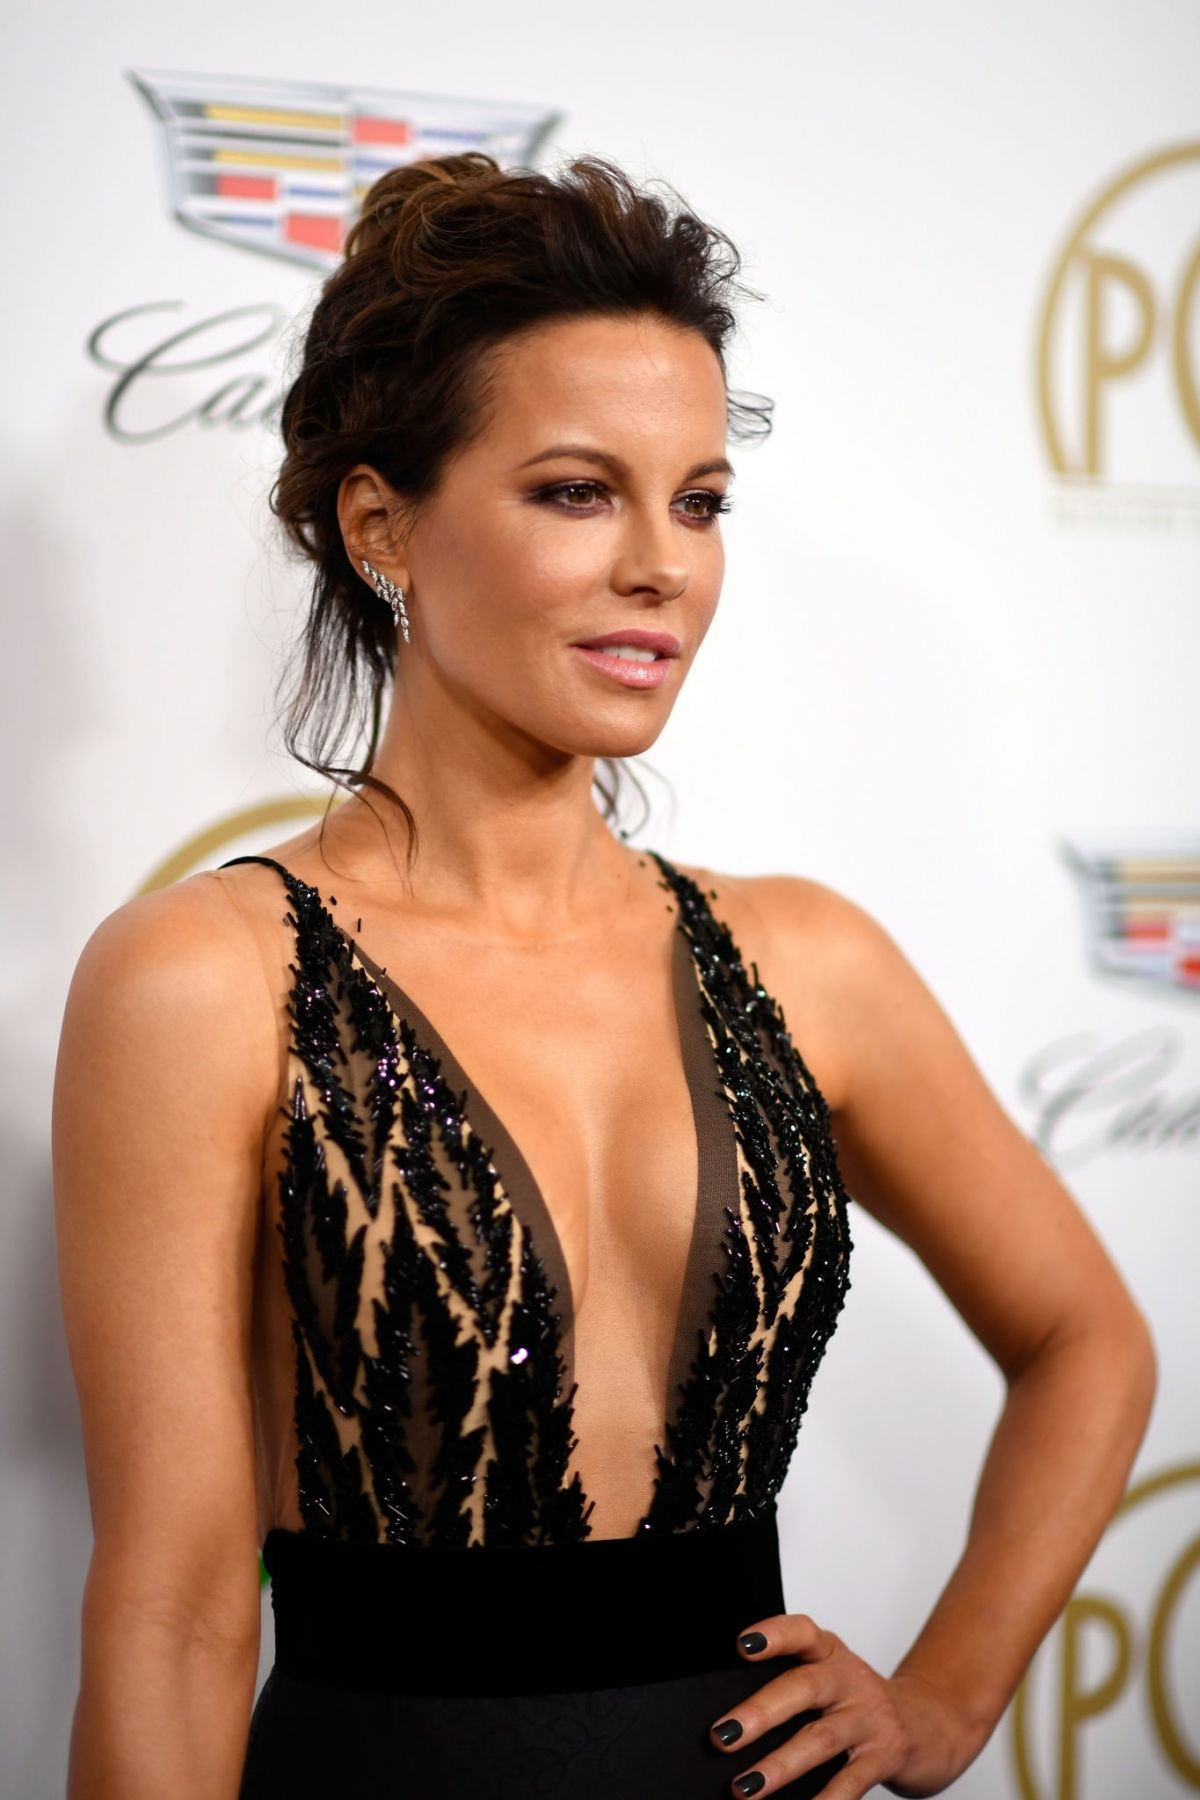 kate-beckinsale-at-2019-producers-guild-awards-in-beverly-hills-01-19-2019-9.jpg